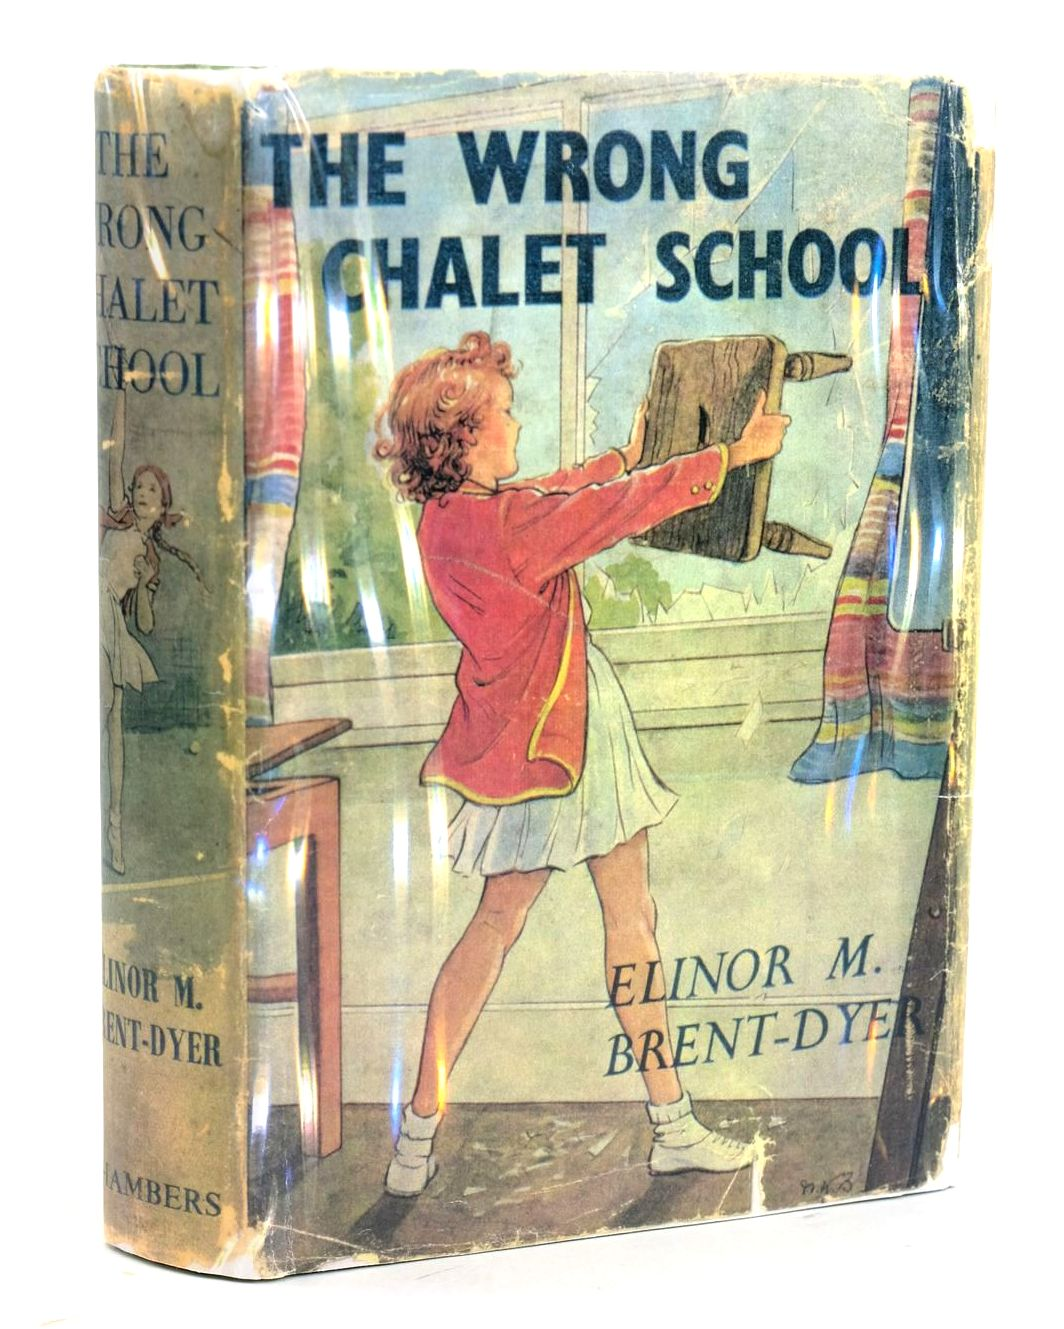 Photo of THE WRONG CHALET SCHOOL written by Brent-Dyer, Elinor M. illustrated by Brisley, Nina K. published by W. & R. Chambers Limited (STOCK CODE: 1319150)  for sale by Stella & Rose's Books